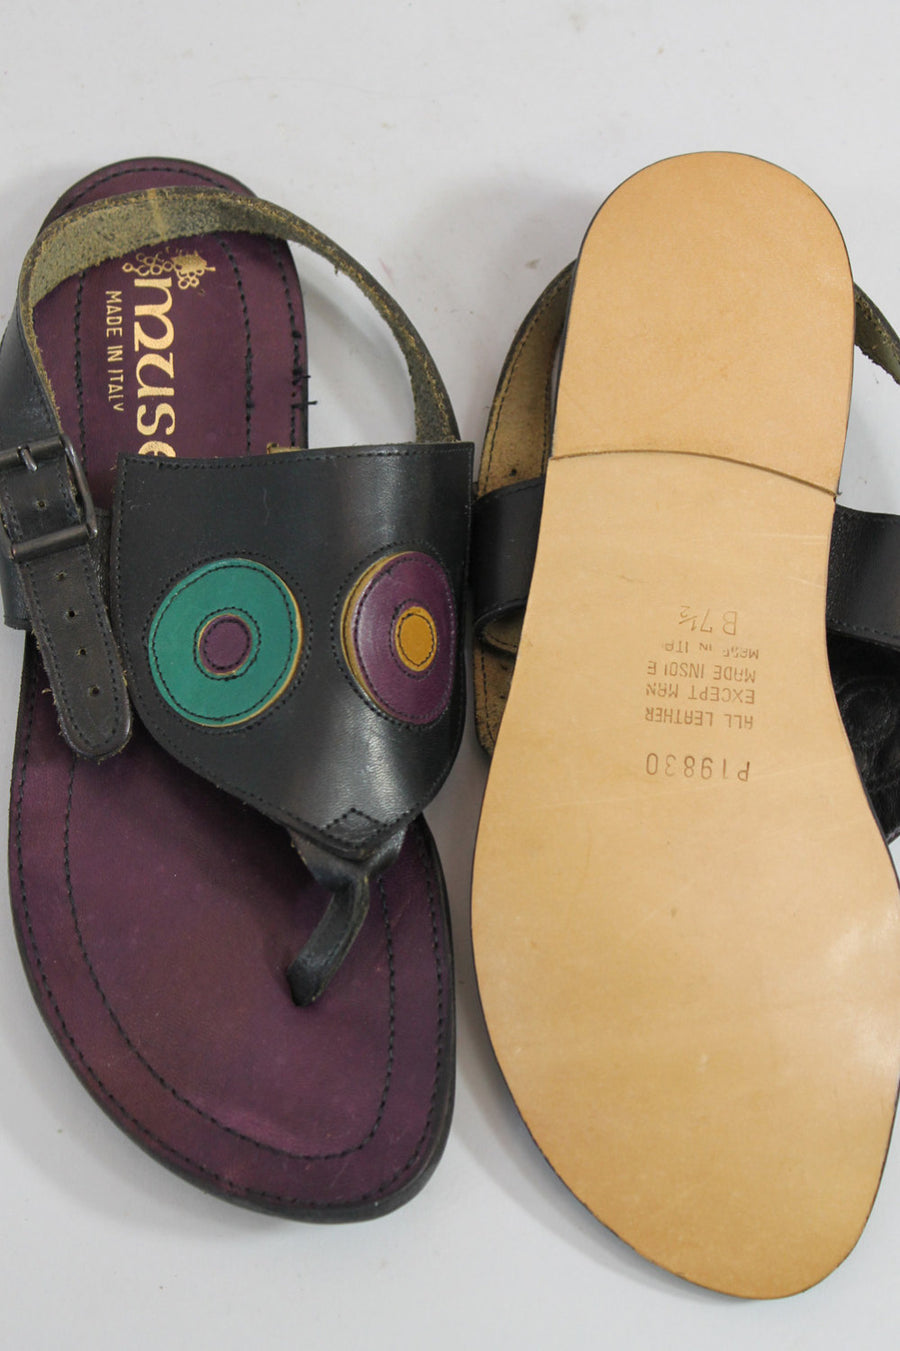 1970s deadstock sandals Italian size 7.5 us | vintage leather flats